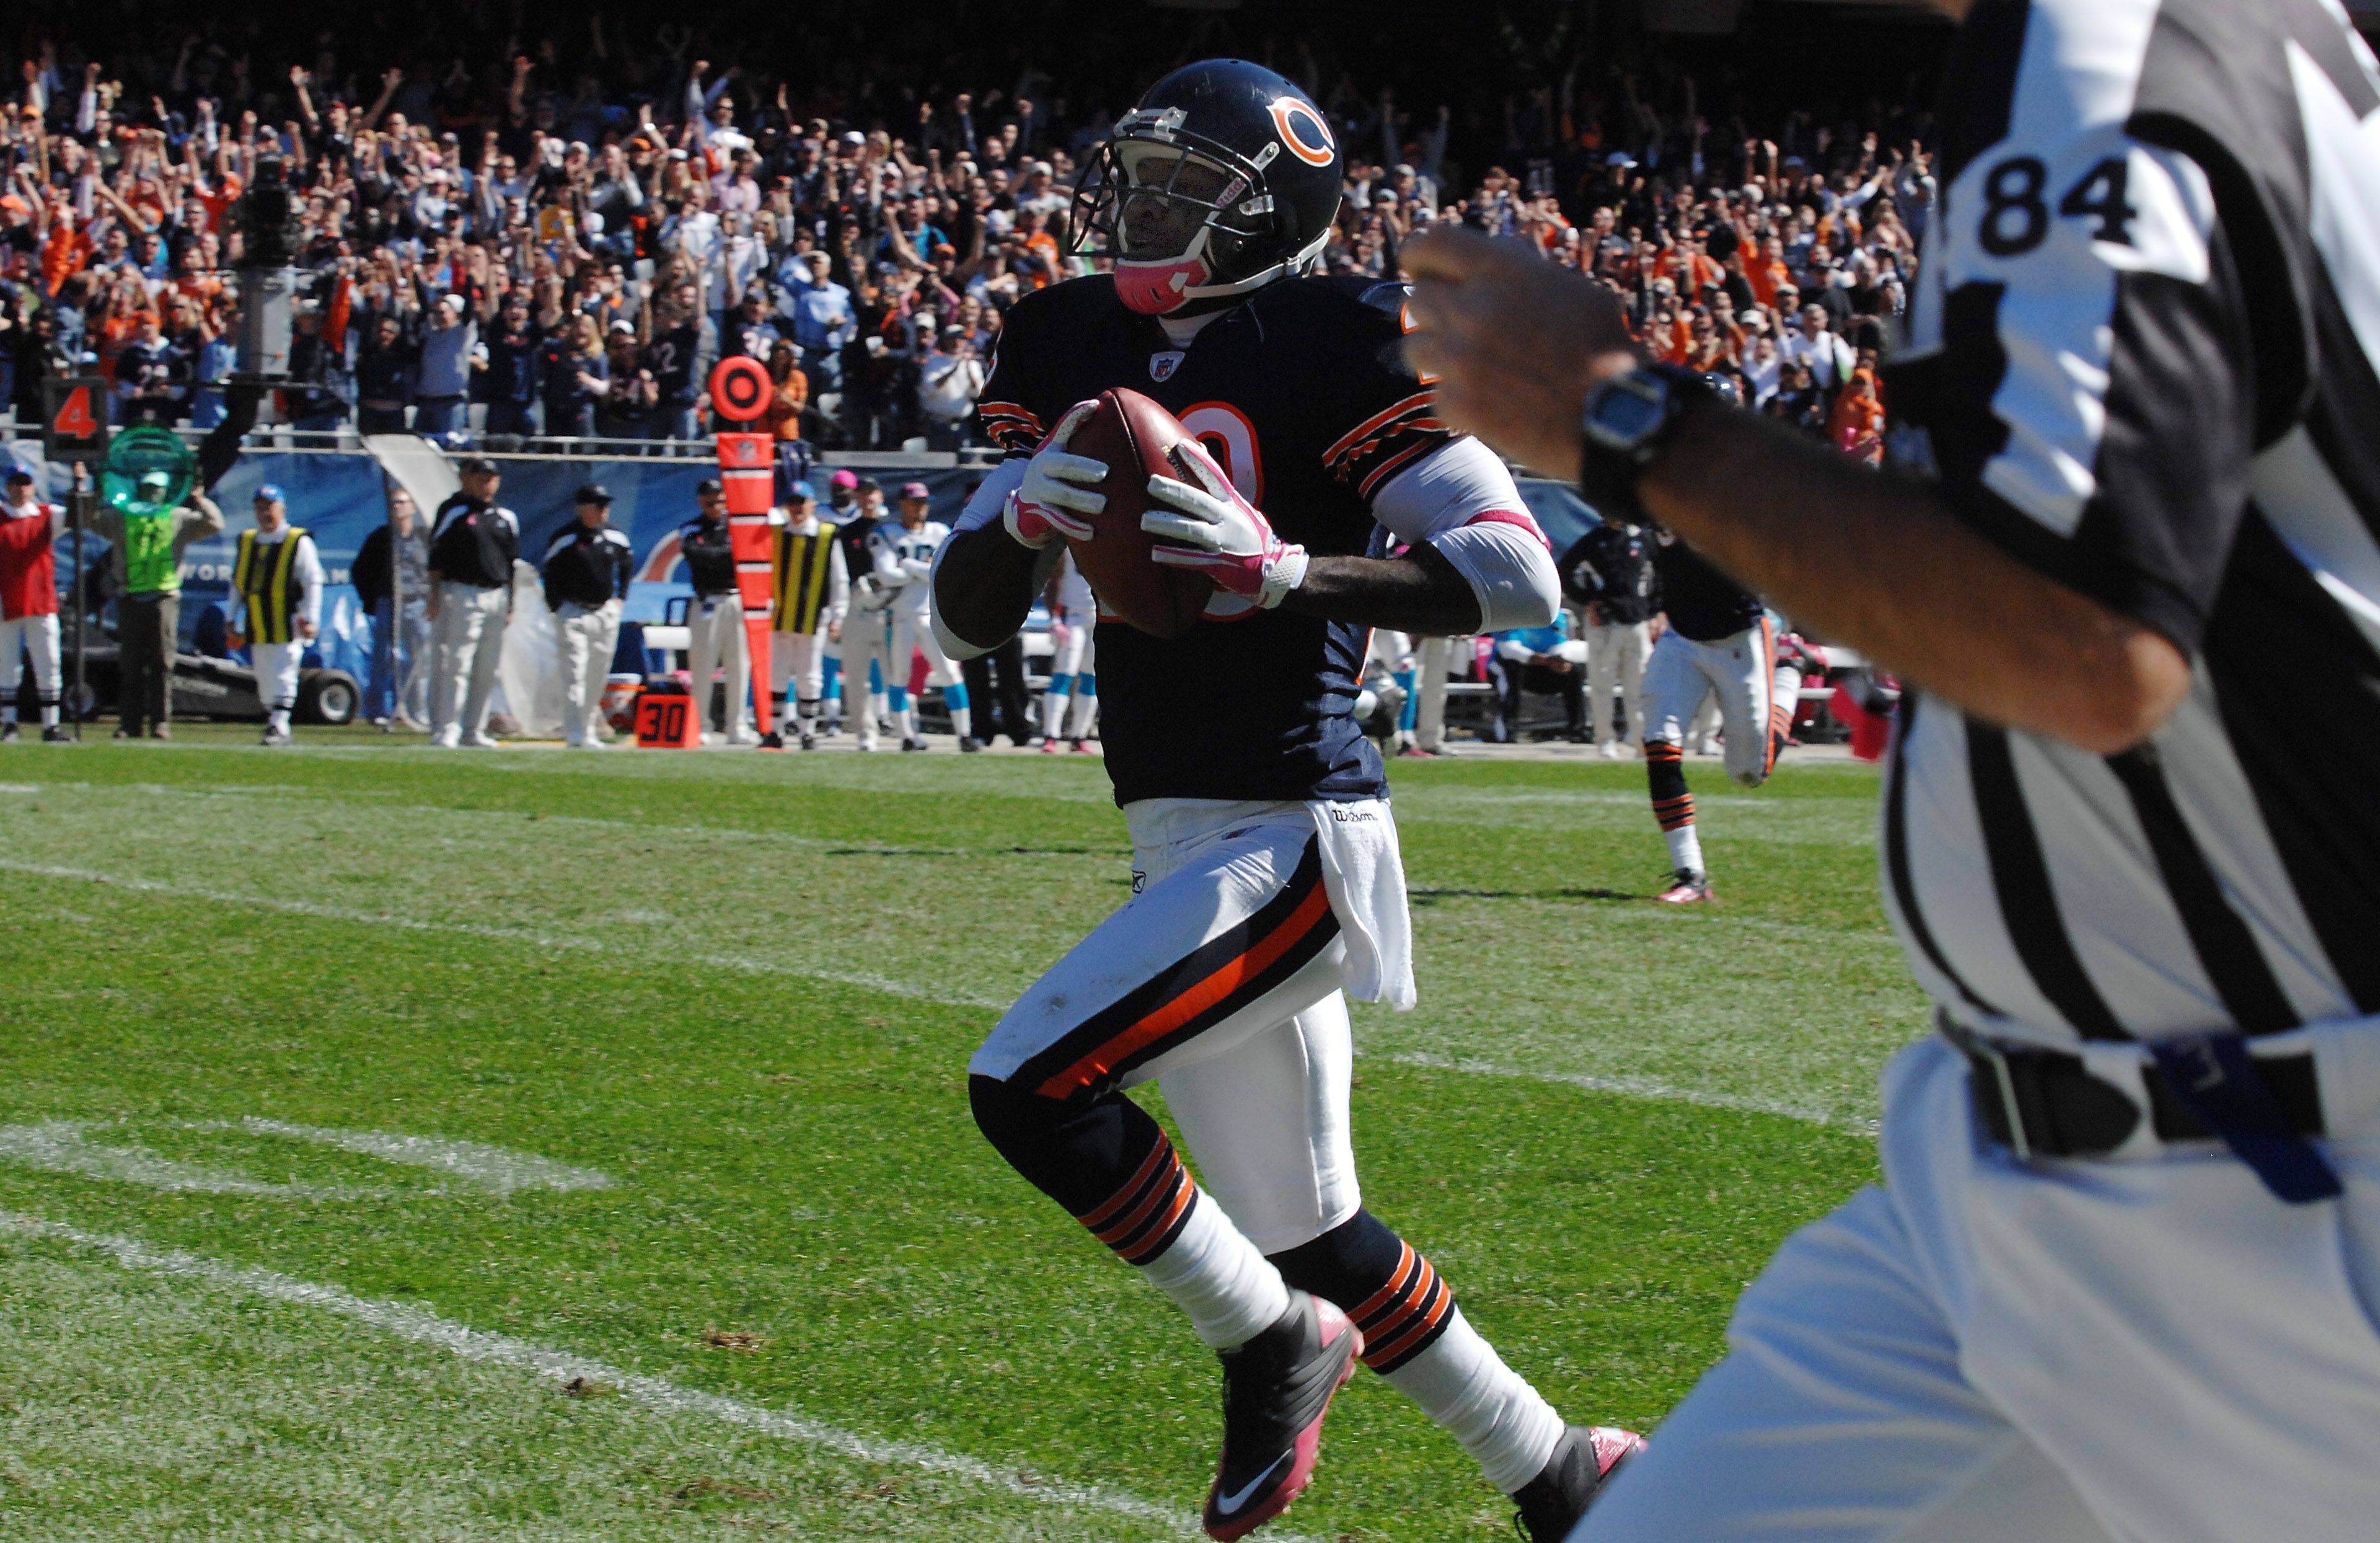 Bears Devin Hester runs back a second quarter punt return for a touchdown and an NFL record against the Panthers defense at Soldier Field on Sunday.